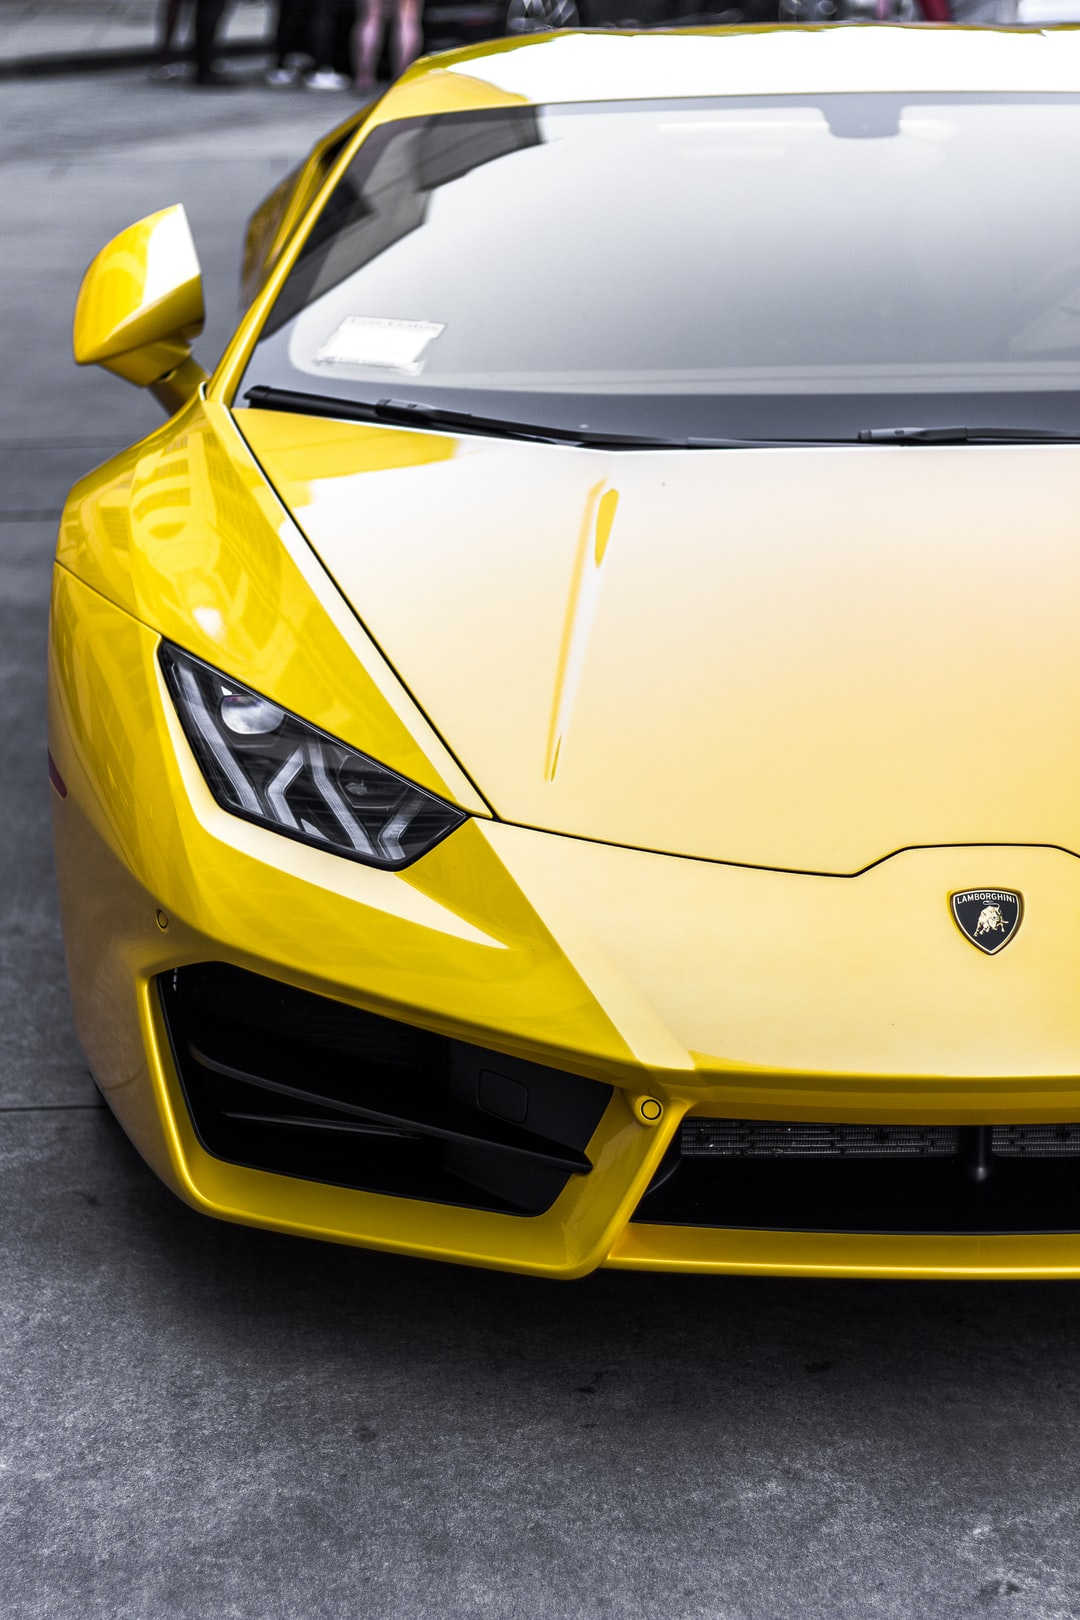 100 Lamborghini Pictures Download Free Images On Unsplash